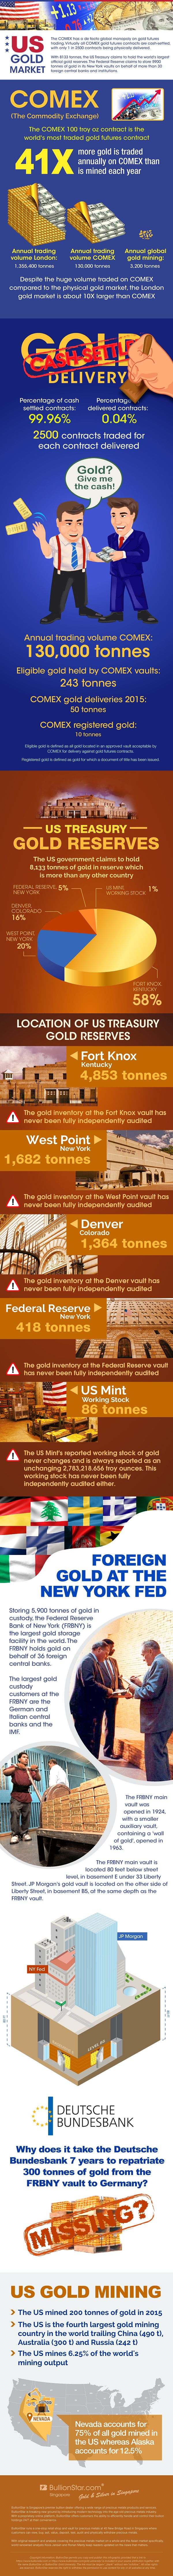 The following infographic provides an excellent snapshot of how much gold is traded via the paper exchanges versus physical metals. It also breaks down percentages of where U.S. gold reserves are (supposedly) held. Keep in mind that the none of the United States gold reserves have ever been fully independendtly audited.The Federal Reserve Bank of New